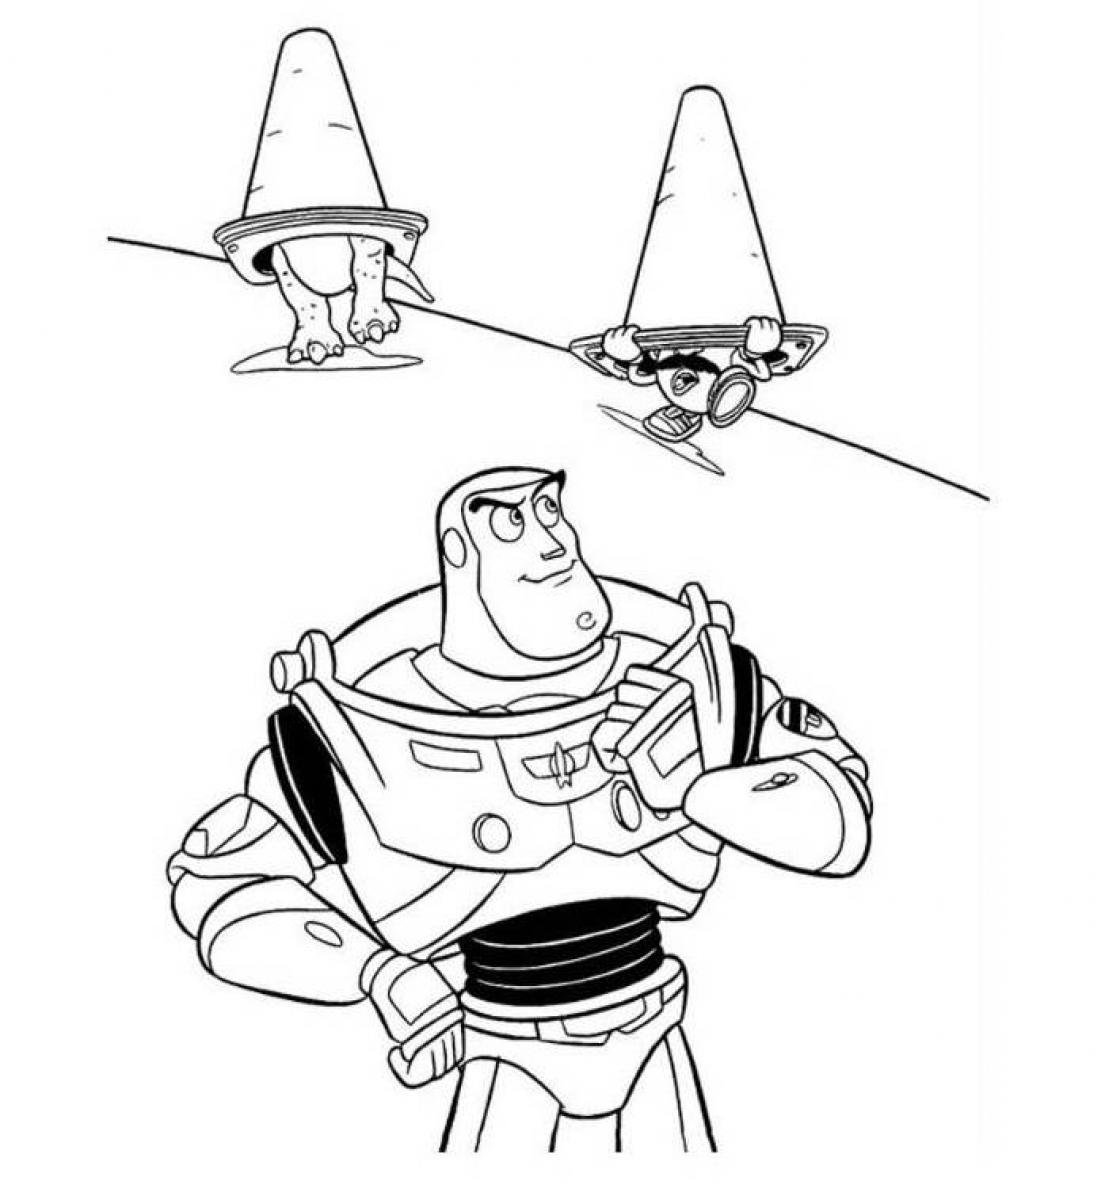 free printable buzz lightyear coloring pages - Buzz Lightyear Coloring Pages Free